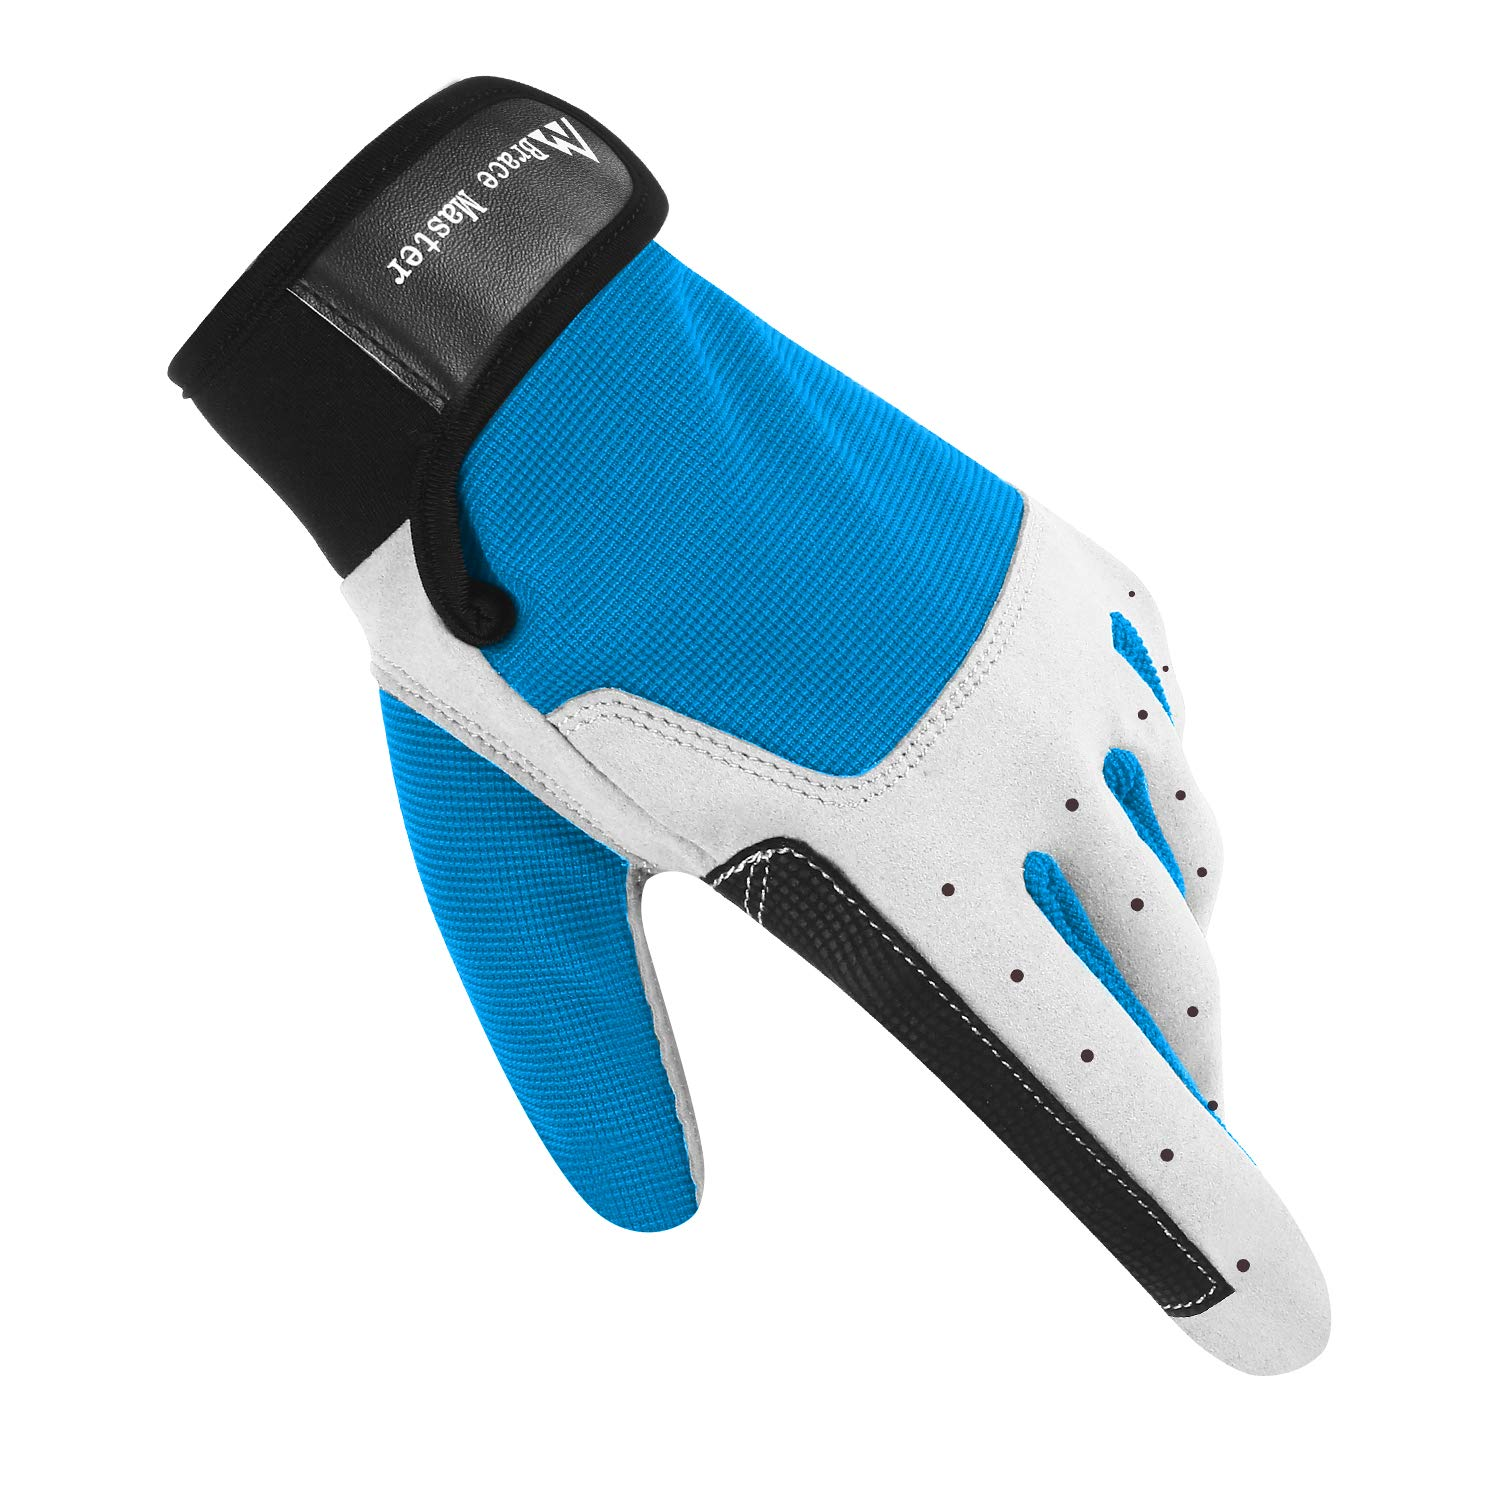 Brace Master Sailing Gloves Men Women for Sailing, Fishing, Boating, Kayaking, Surfing, Canoe Padding, Dinghy and Water Sports, Leather in Palm to Enhance Gripping (F Blue, Large) by Brace Master